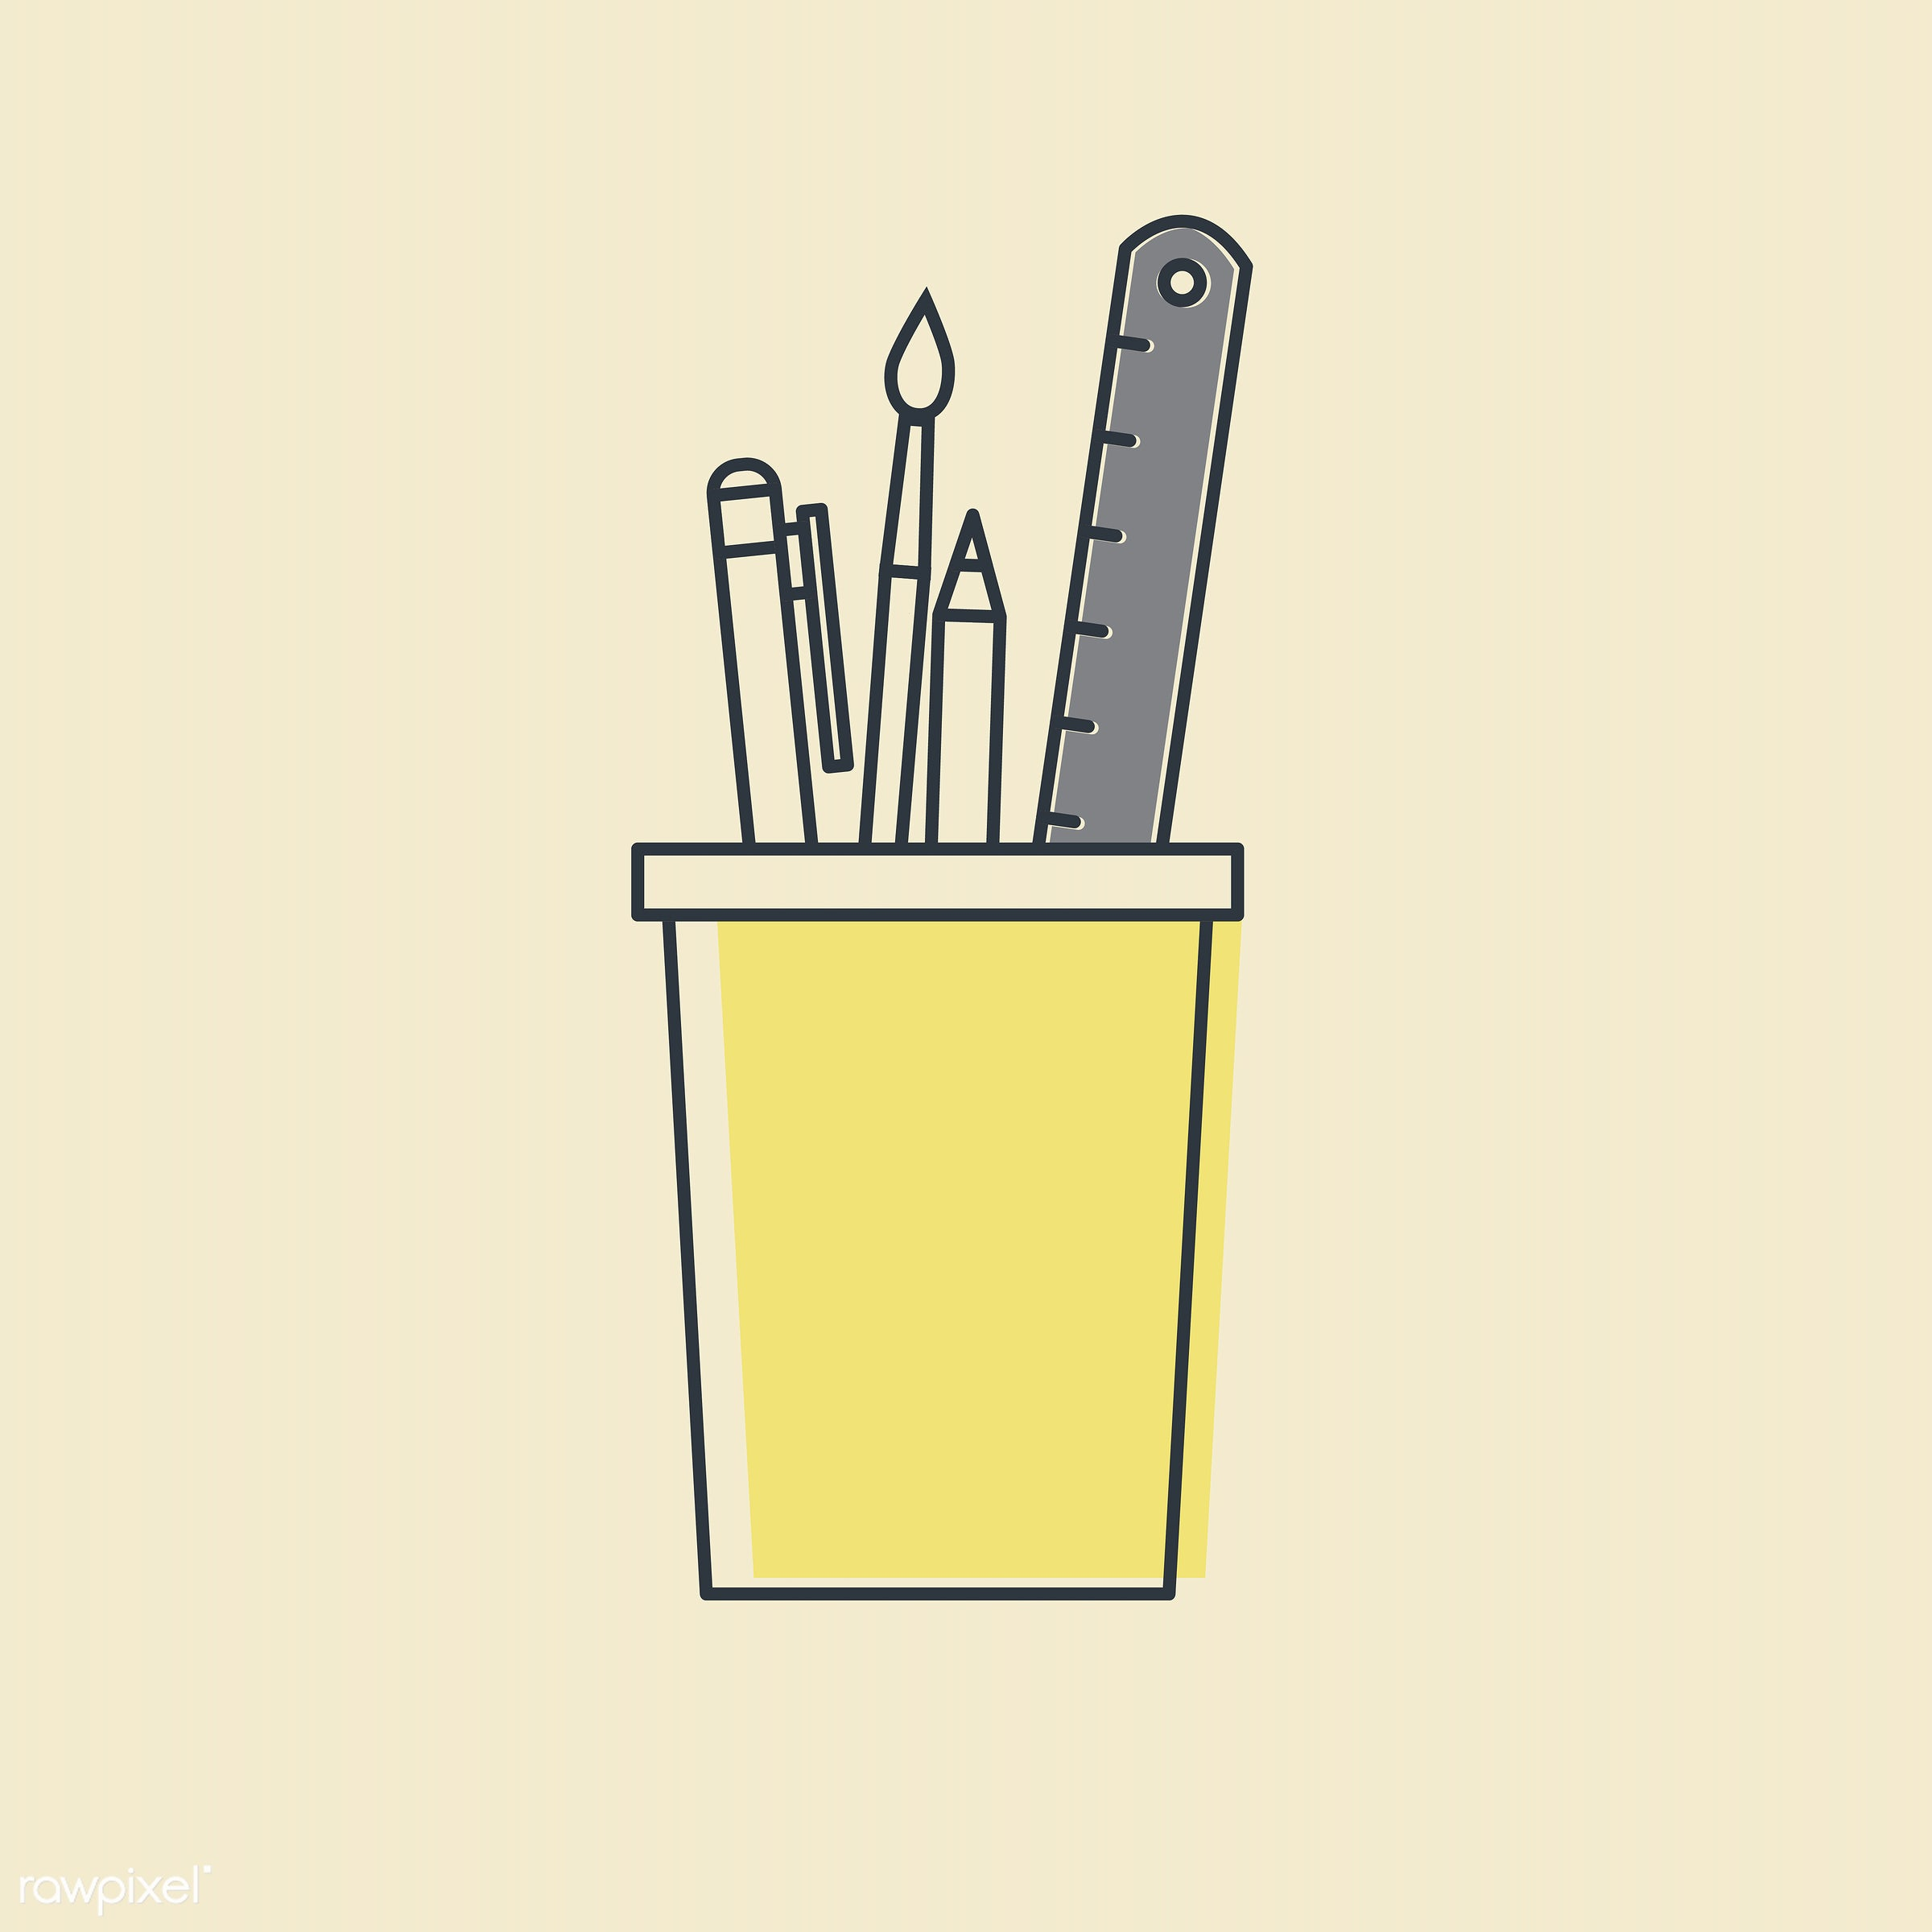 Vector of office supply icon - design, graphic, icon, illustration, office supplies, pen, pencil, ruler, sign, stationery,...